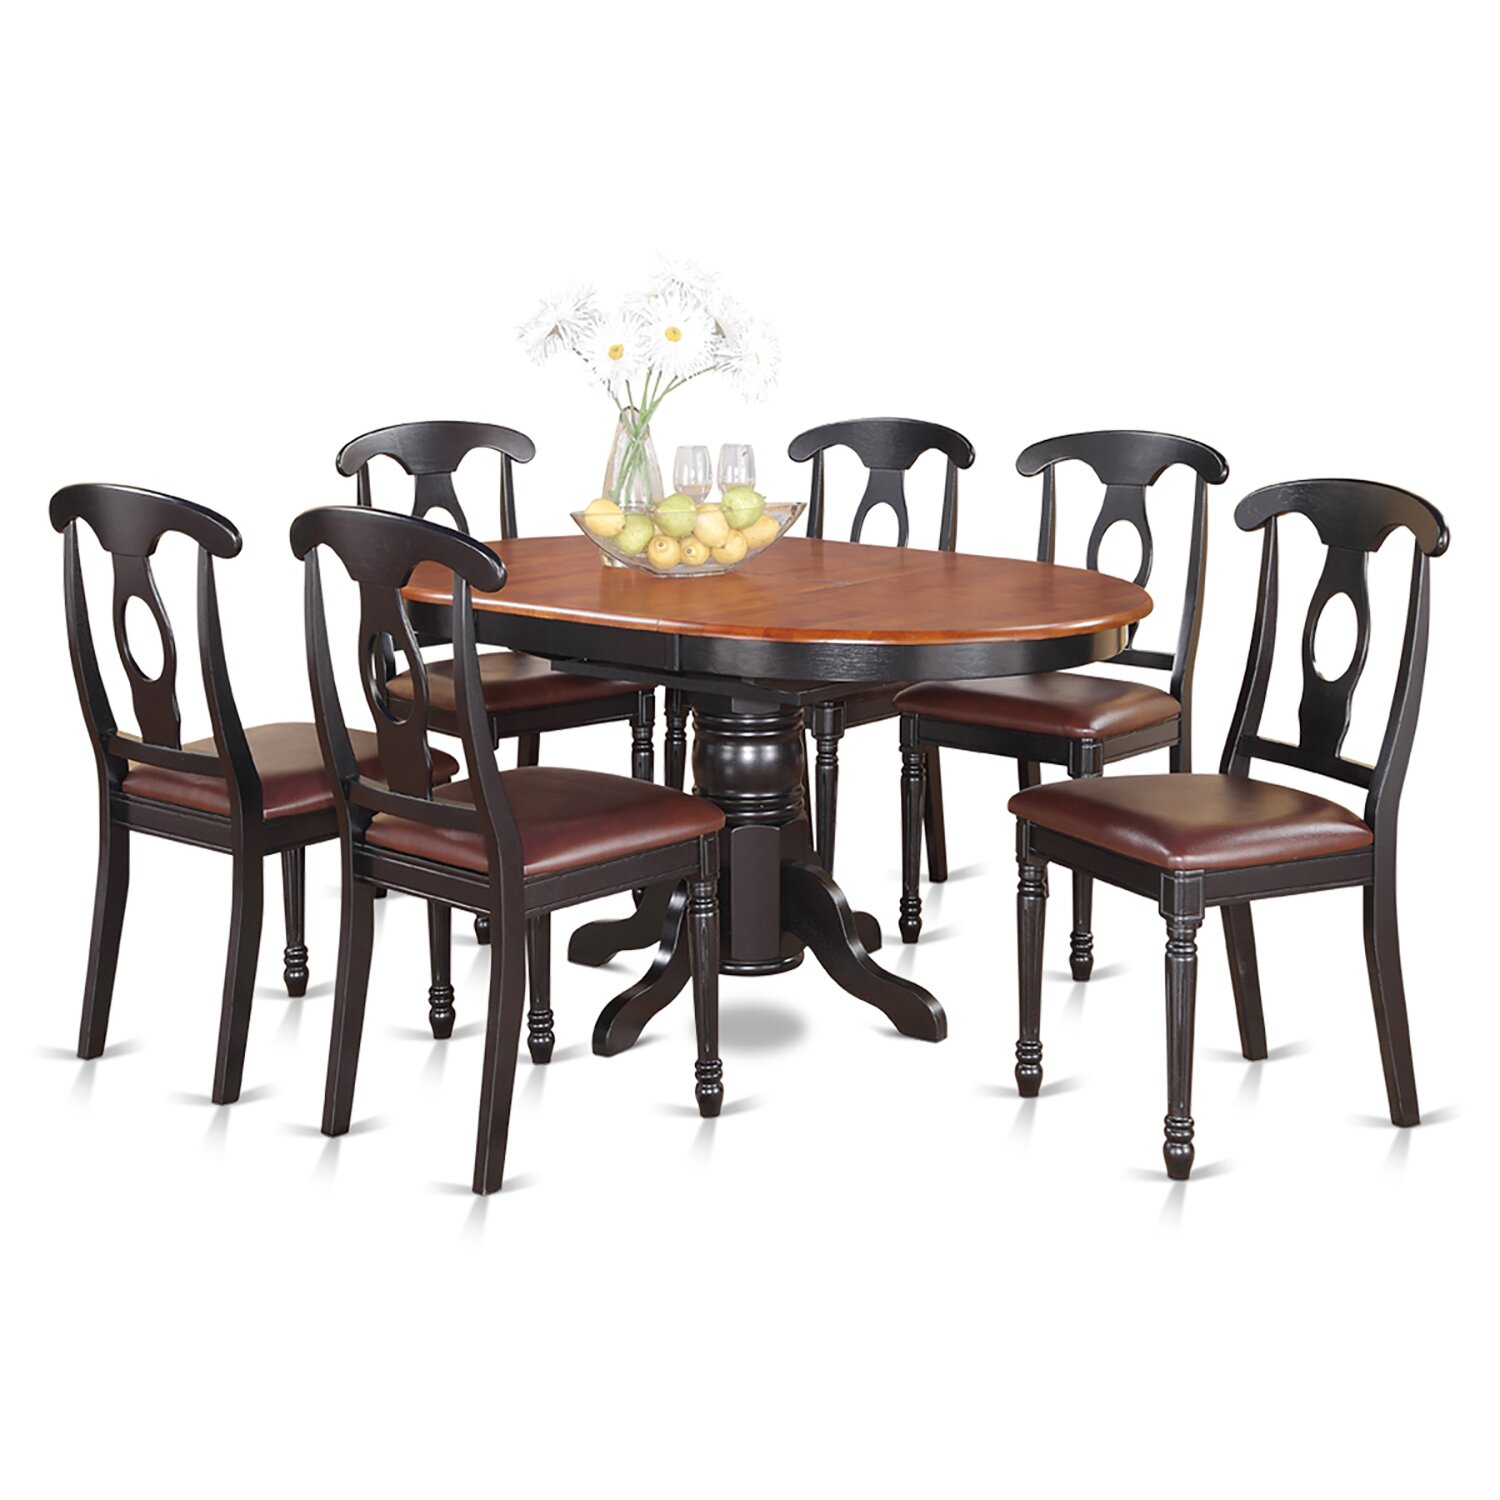 Piece dining room set under 500 of 7 piece dining room for 7 piece dining room set under 500